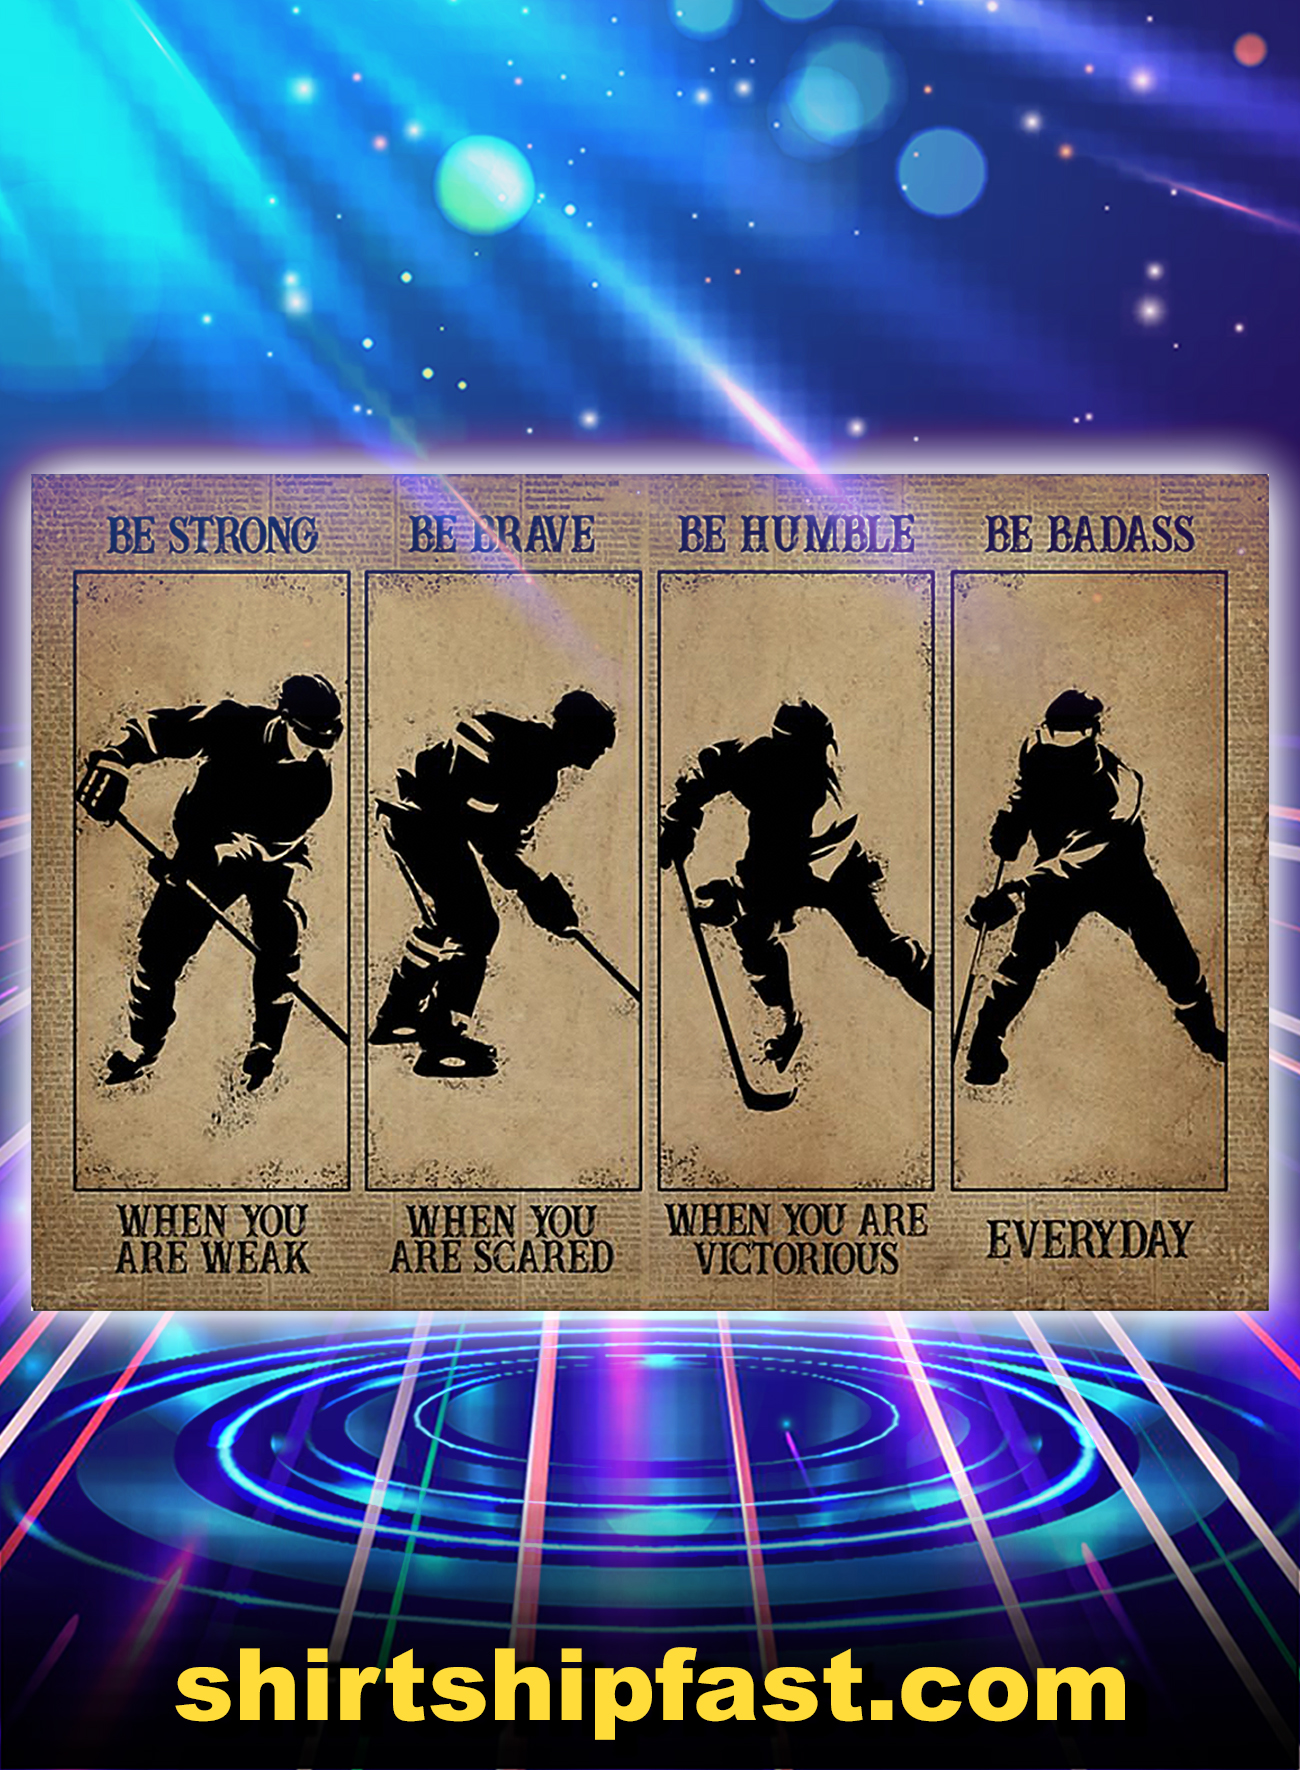 Hockey be strong be brave be humble be badass poster - A4